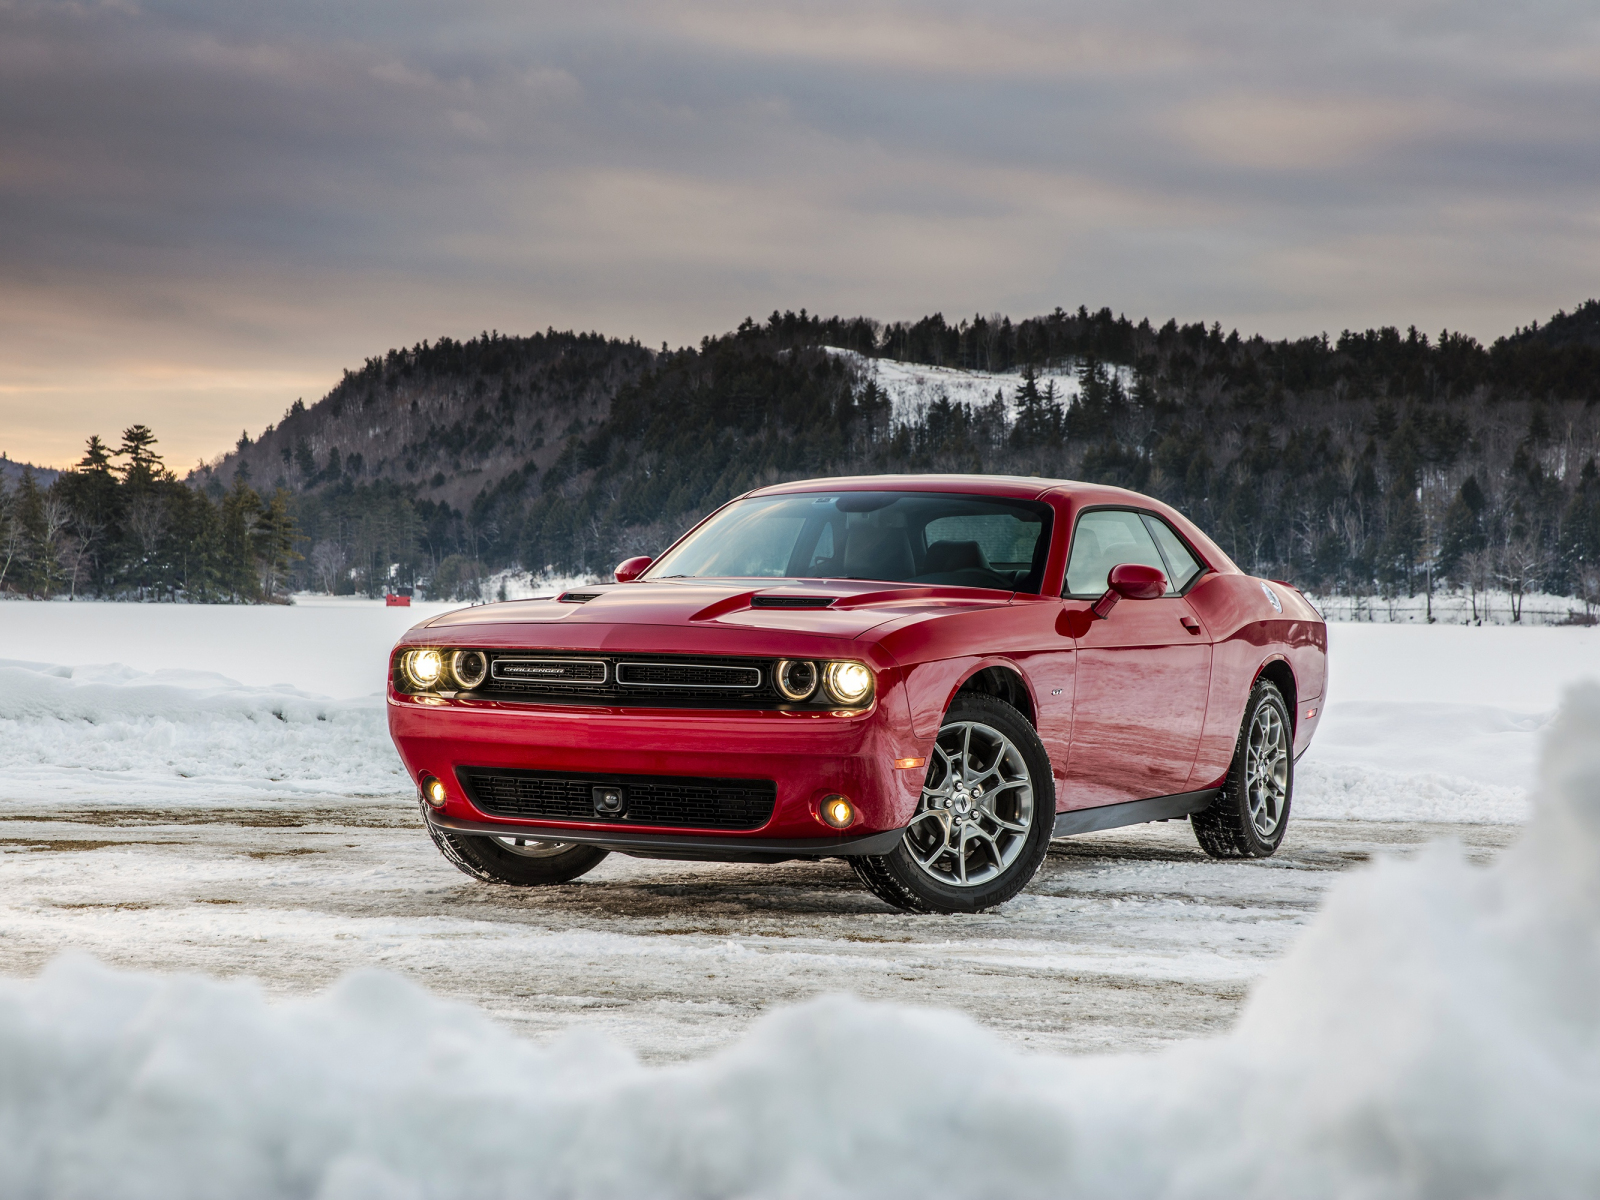 Dodge challenger, red muscle car, 1600x1200 wallpaper